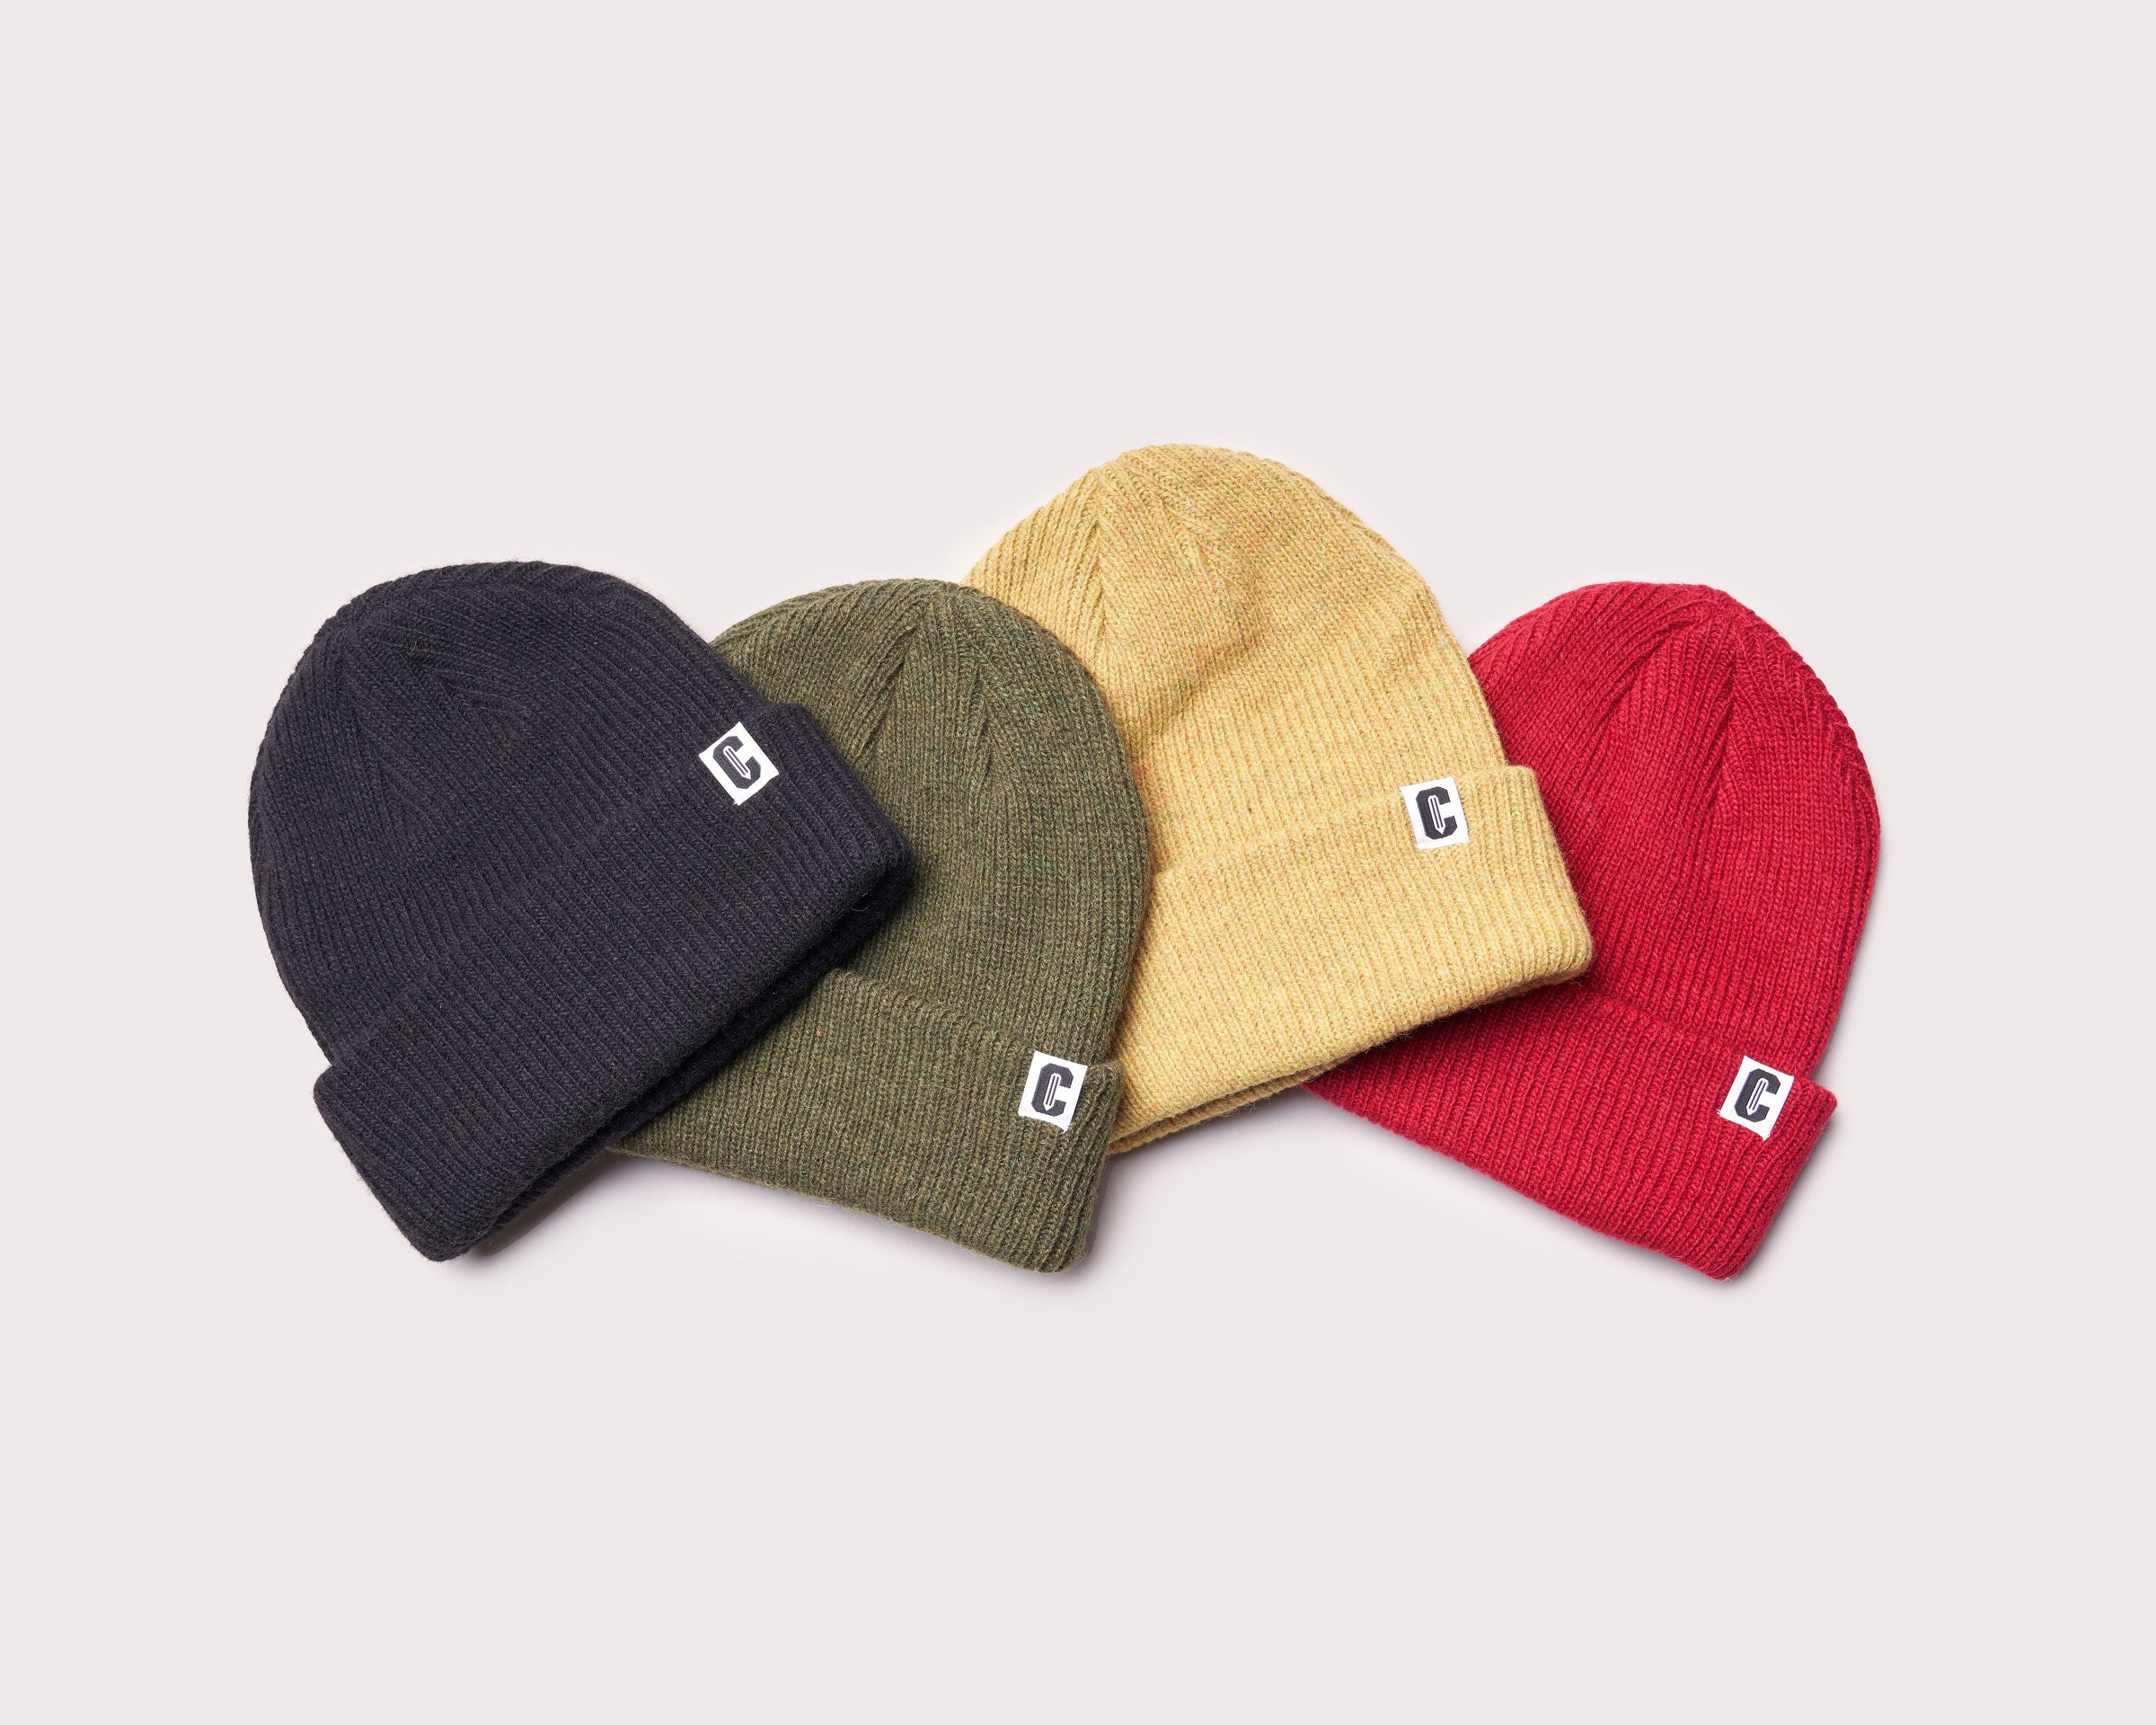 Four beanies arranged in a staggered layout